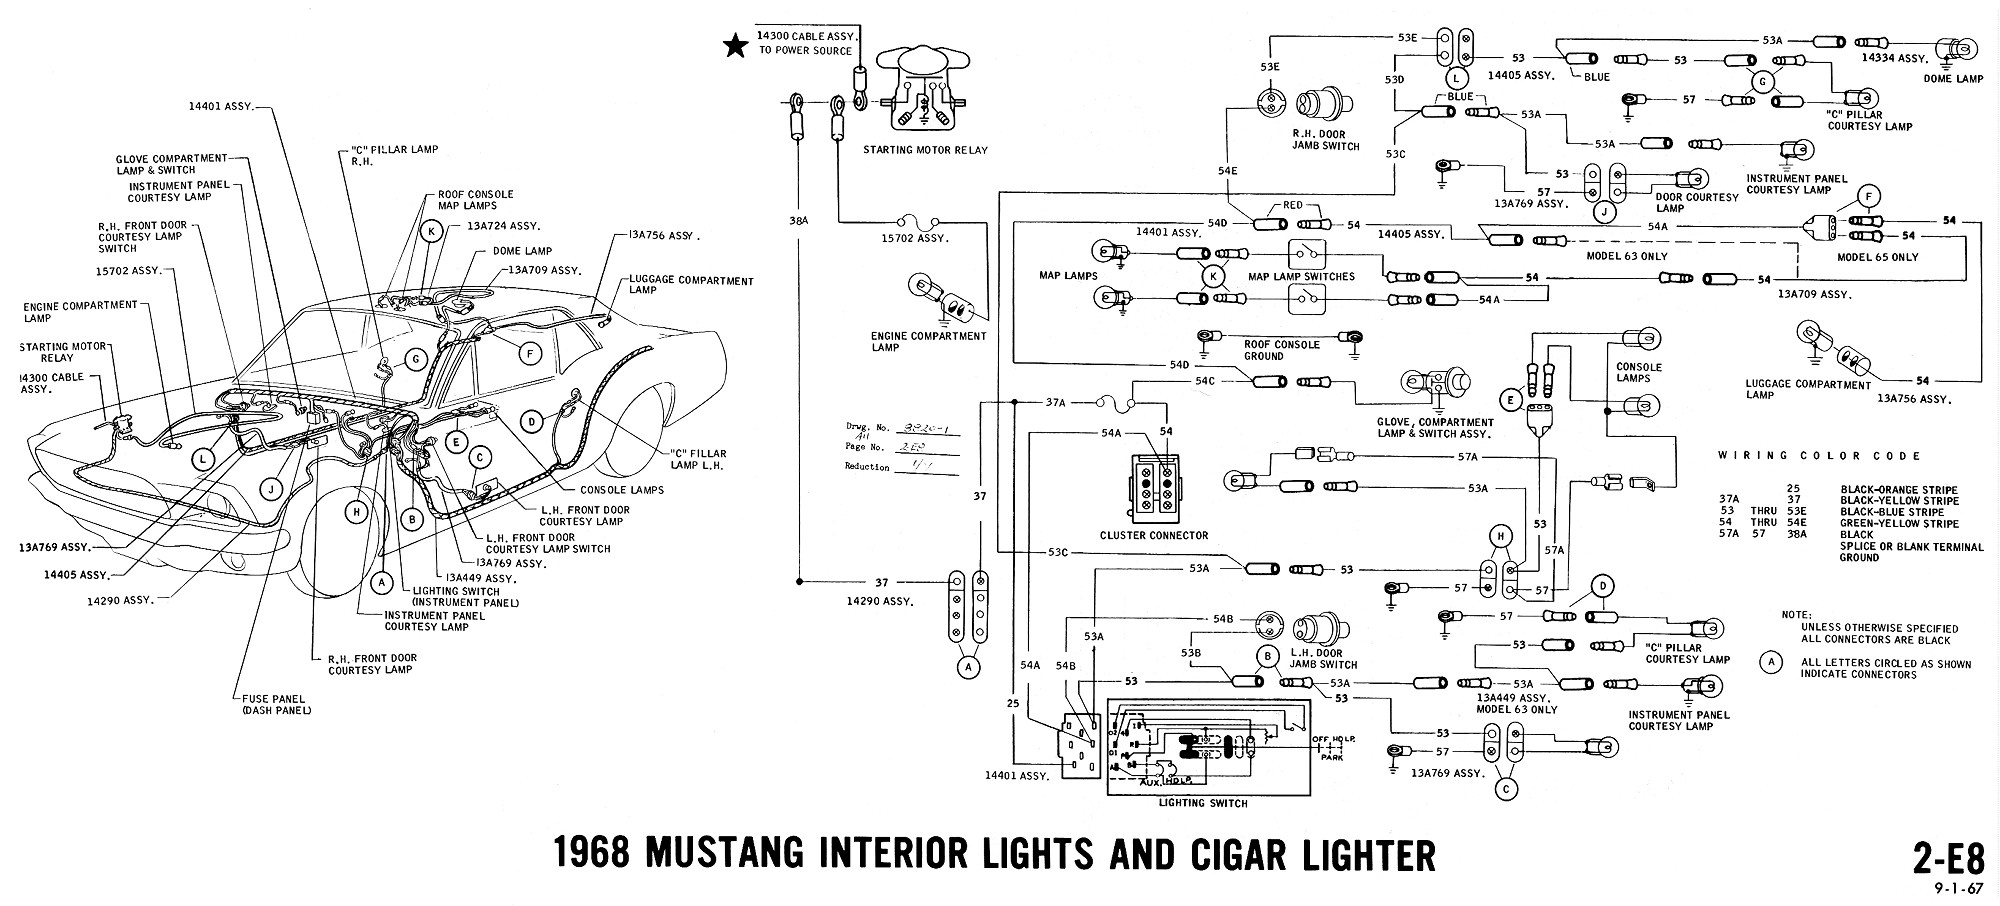 68 Impala Wiring Harness Library 1967 Engine Diagram Mustang Find U2022 Signal Switch Wire Turn